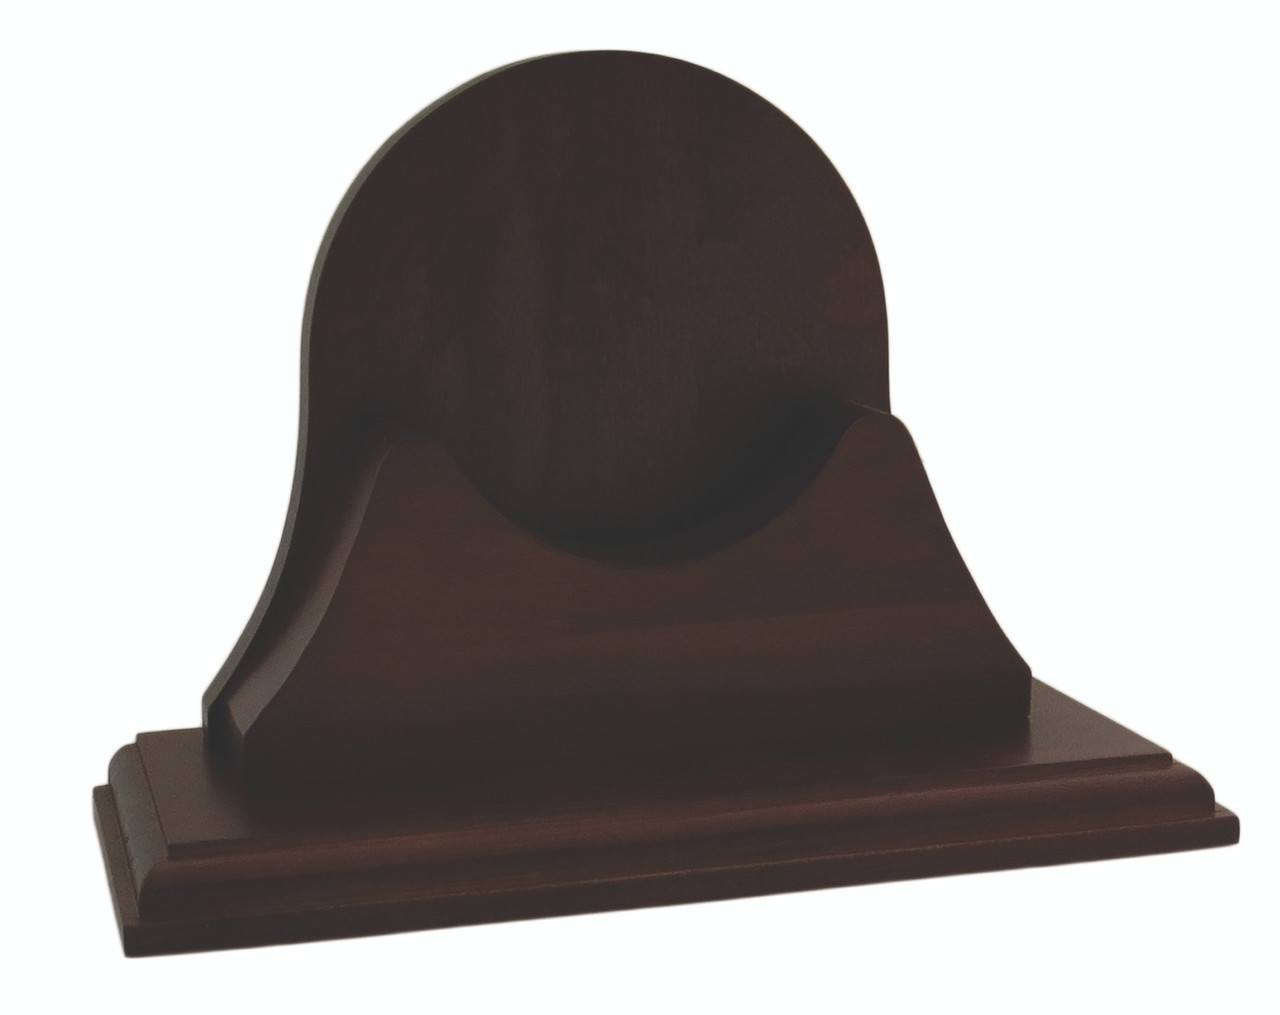 Mahogany Base 135MB for Endurance II 135 Series